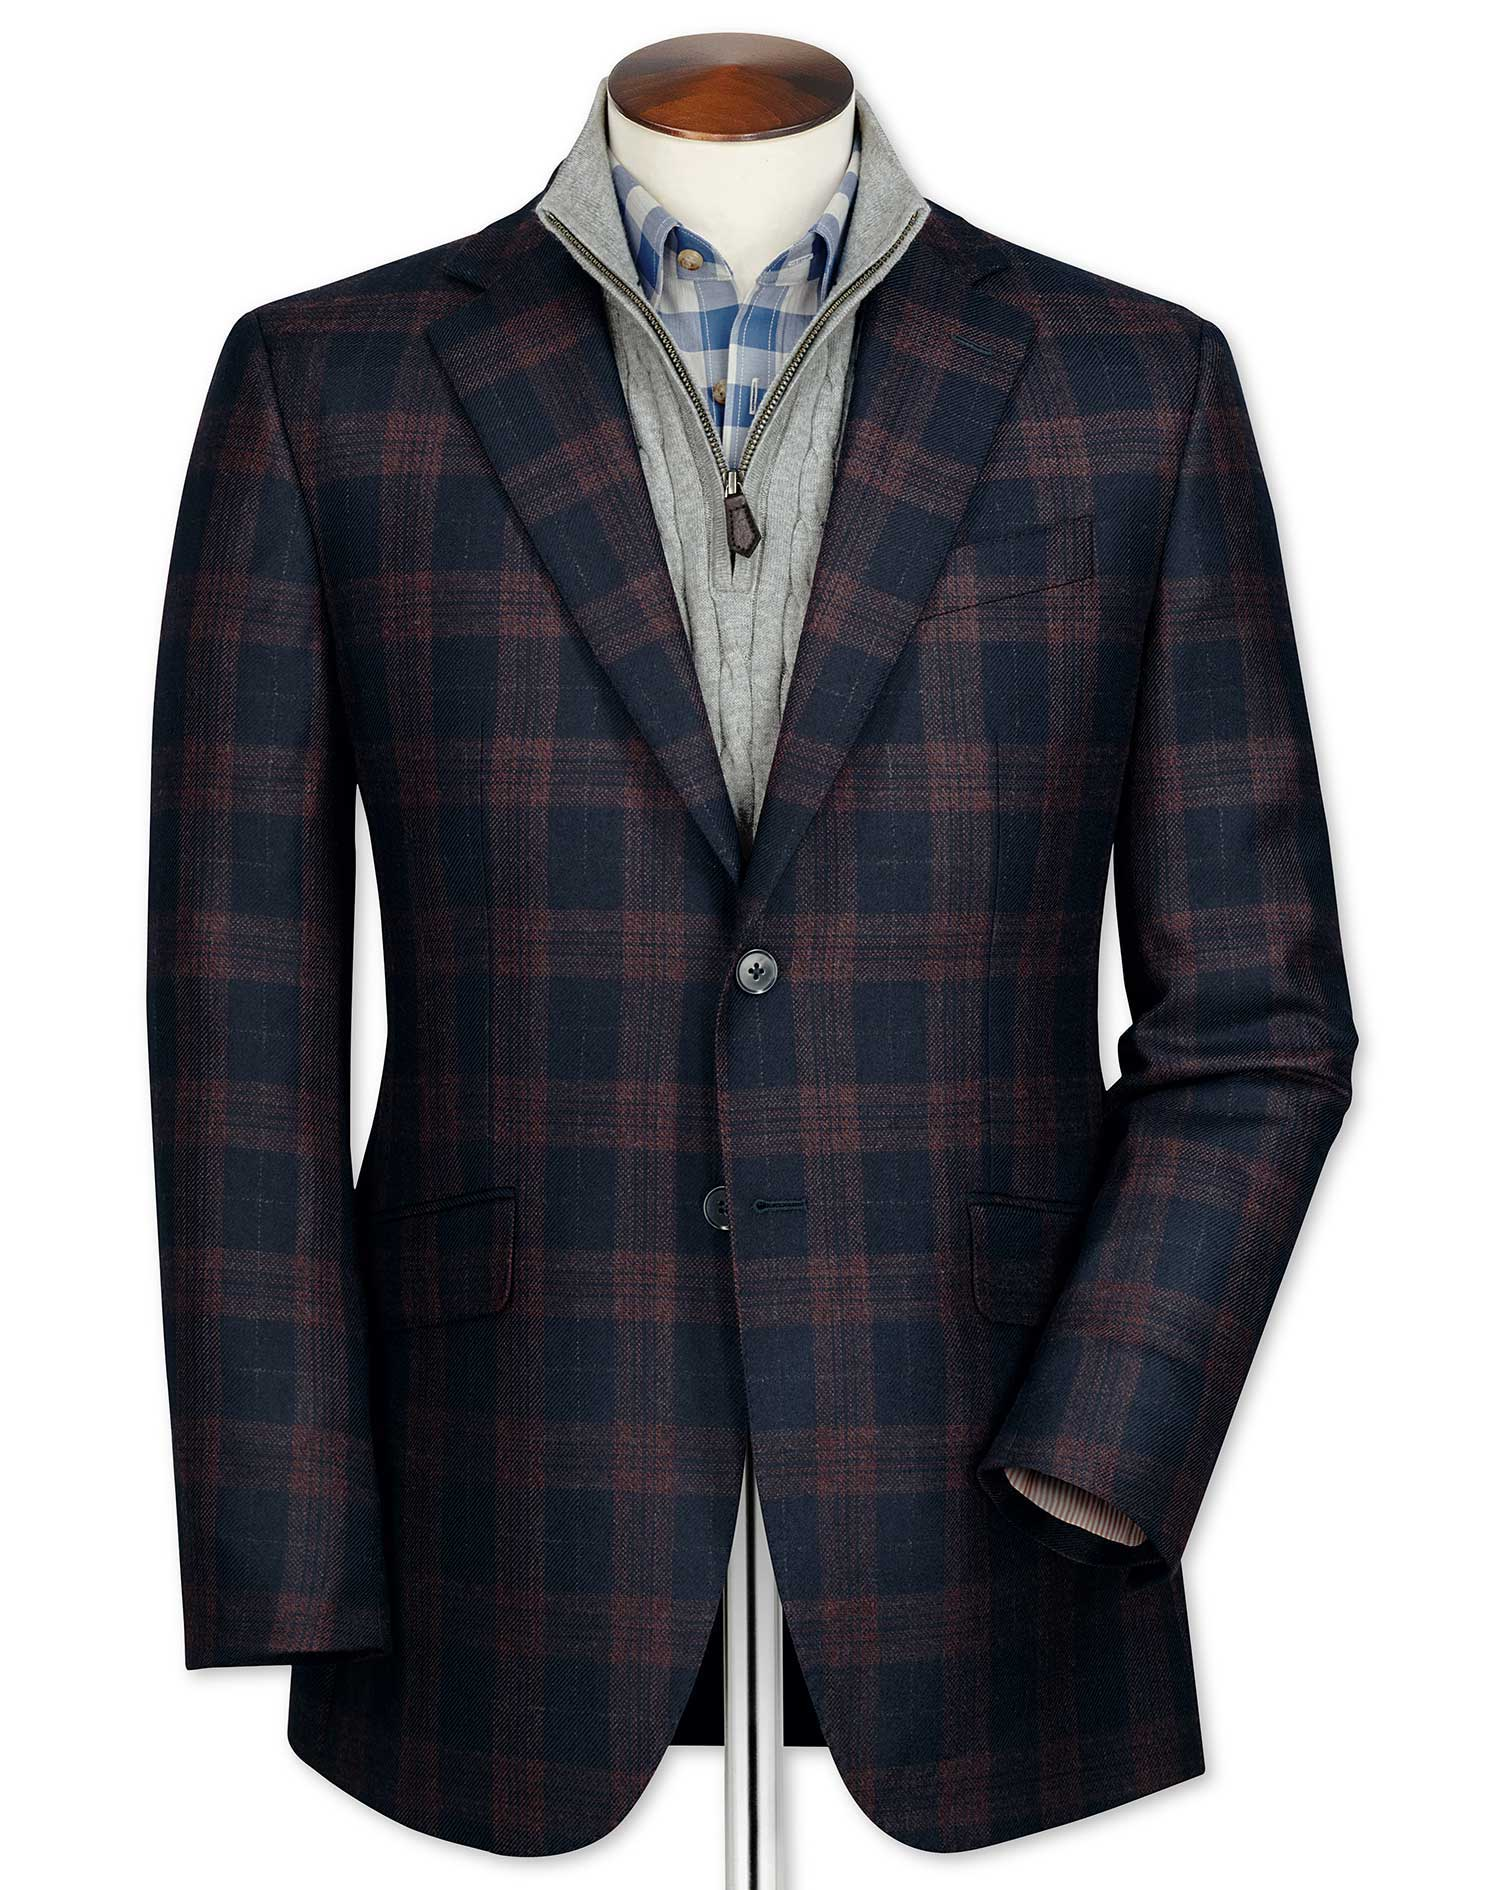 Classic Fit Navy Checkered Lambswool Wool Jacket Size 40 Long by Charles Tyrwhitt